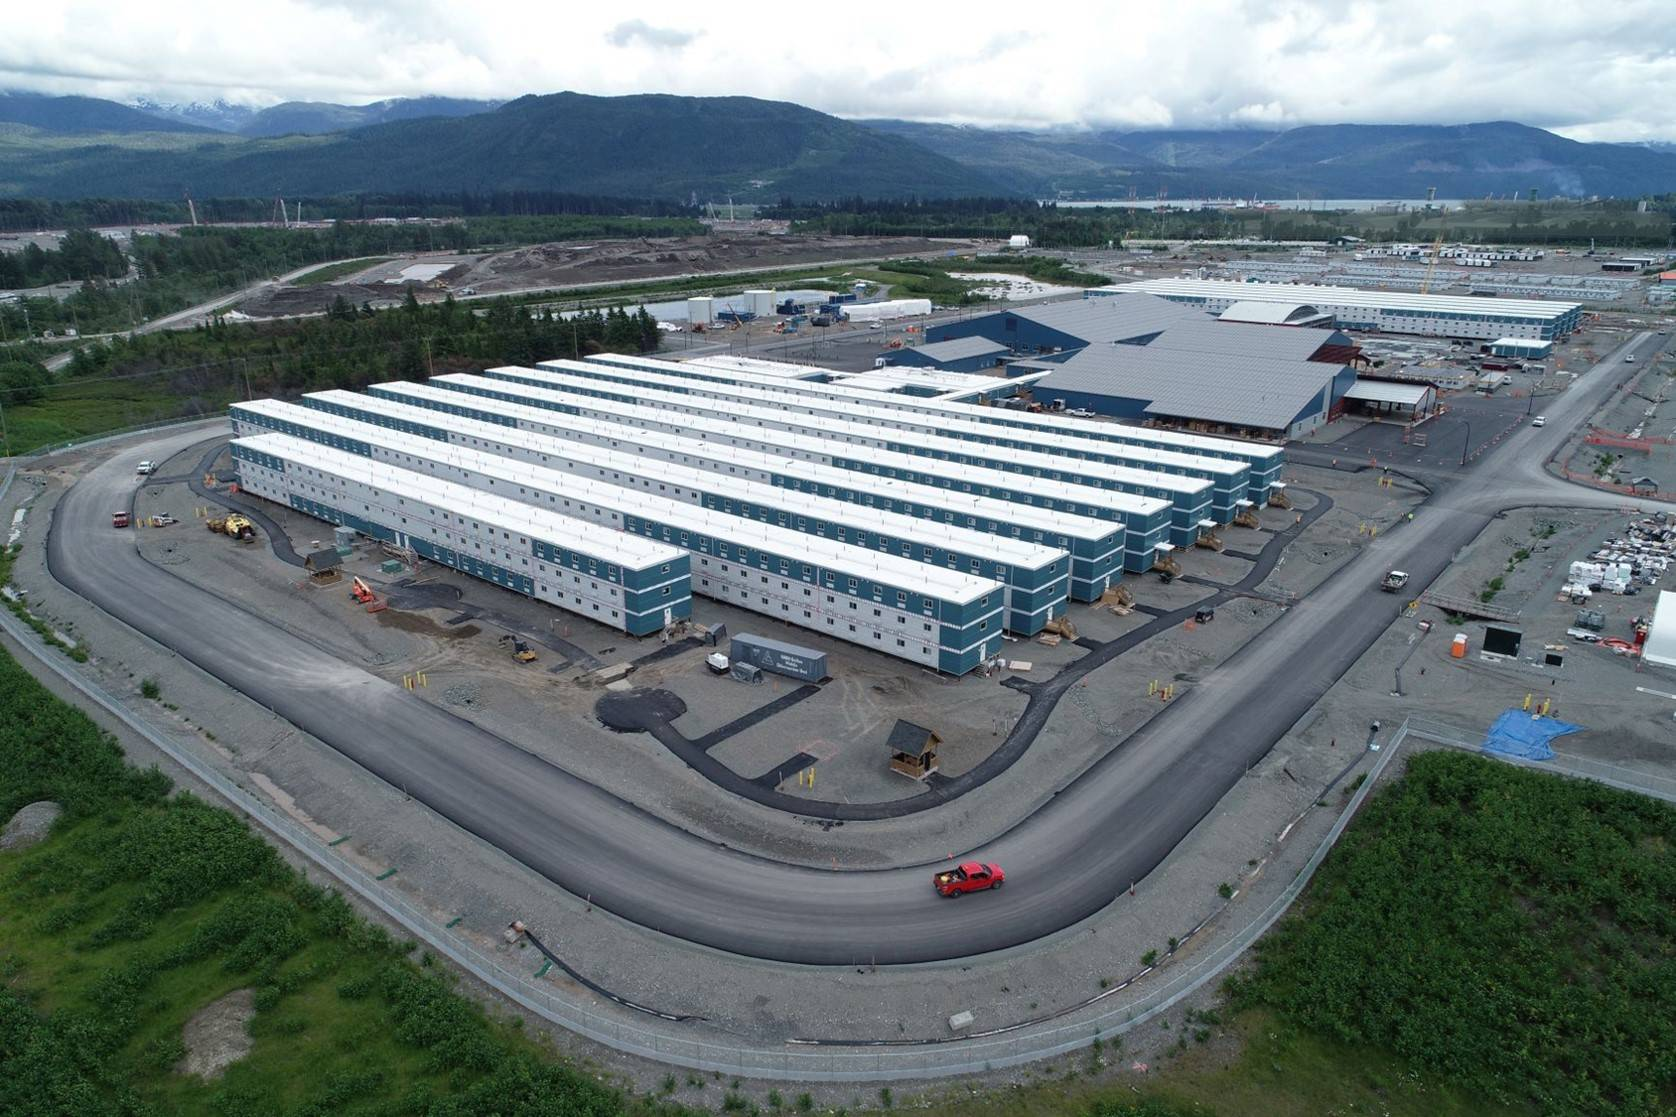 An aerial shot of Cedar Valley Lodge, LNG Canada's newest accommodation for workers on their project site in Kitimat. LNG Canada had a second COVID-19 outbreak declared, just weeks after the first was announced Nov. 19. (Photo courtesy of LNG Canada)